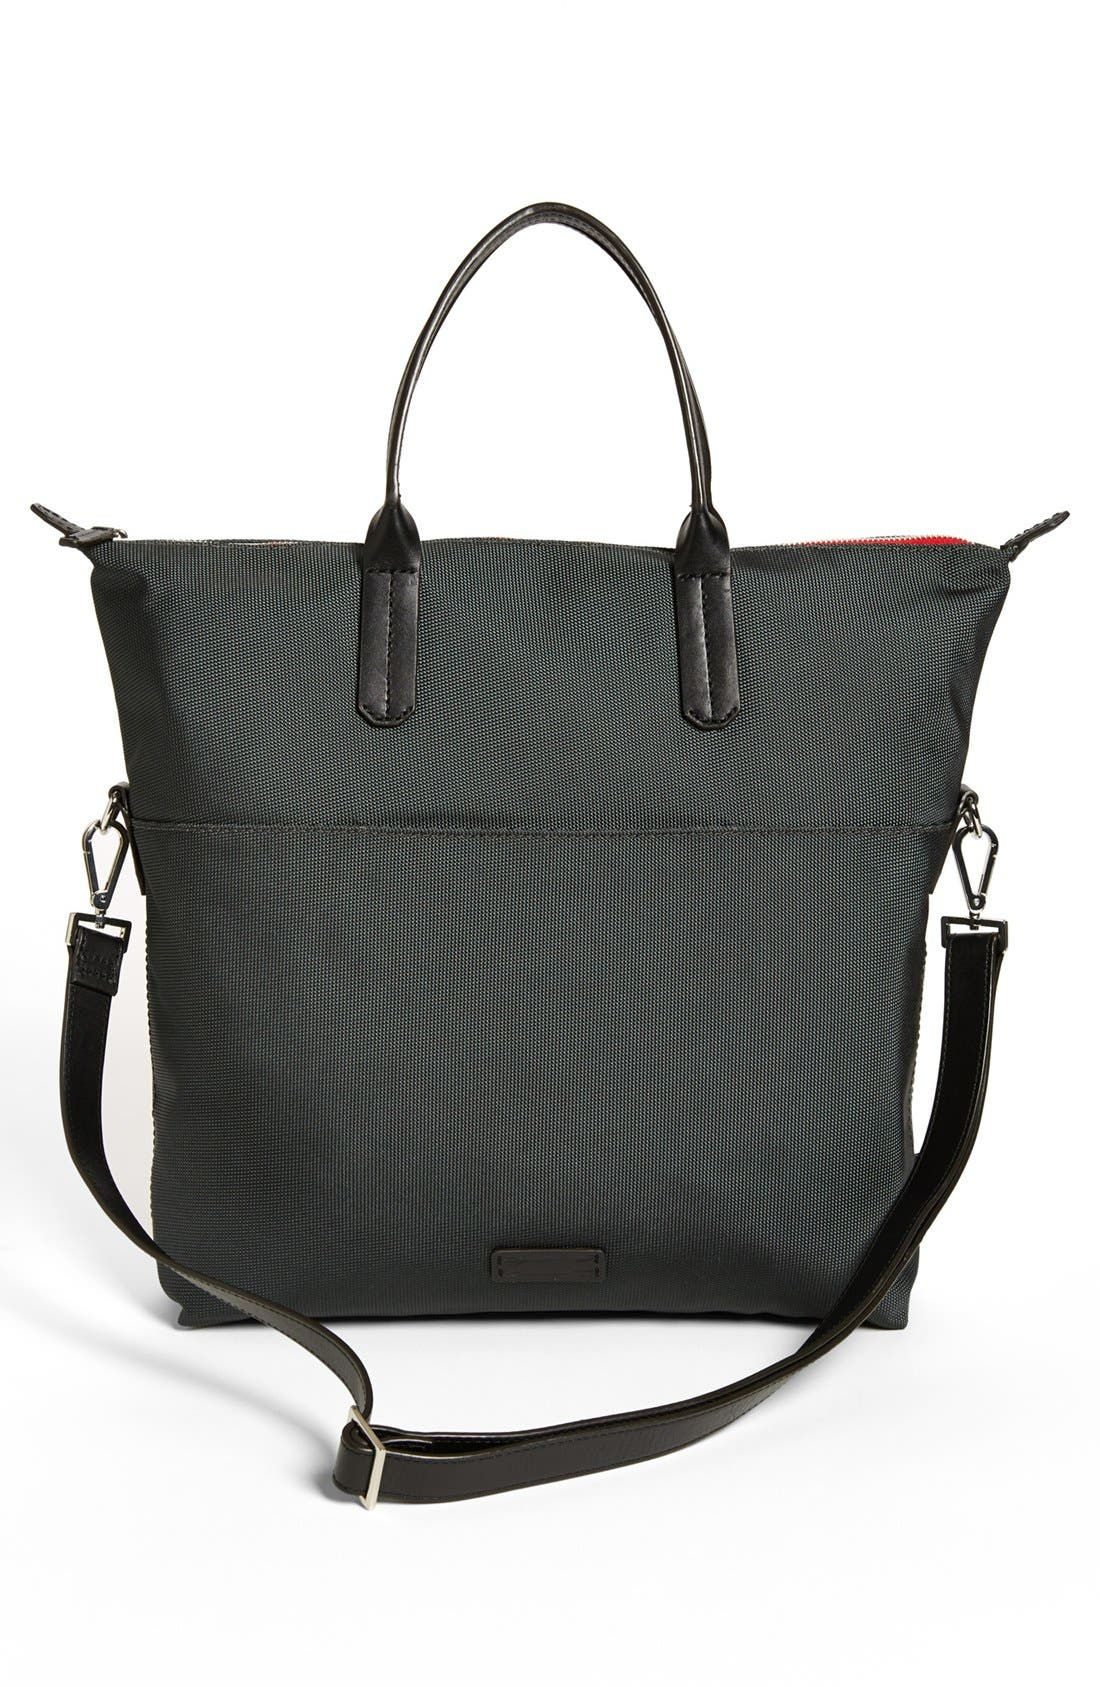 URI MINKOFF, Ben Minkoff 'Heath' Tote Bag, Alternate thumbnail 2, color, 020